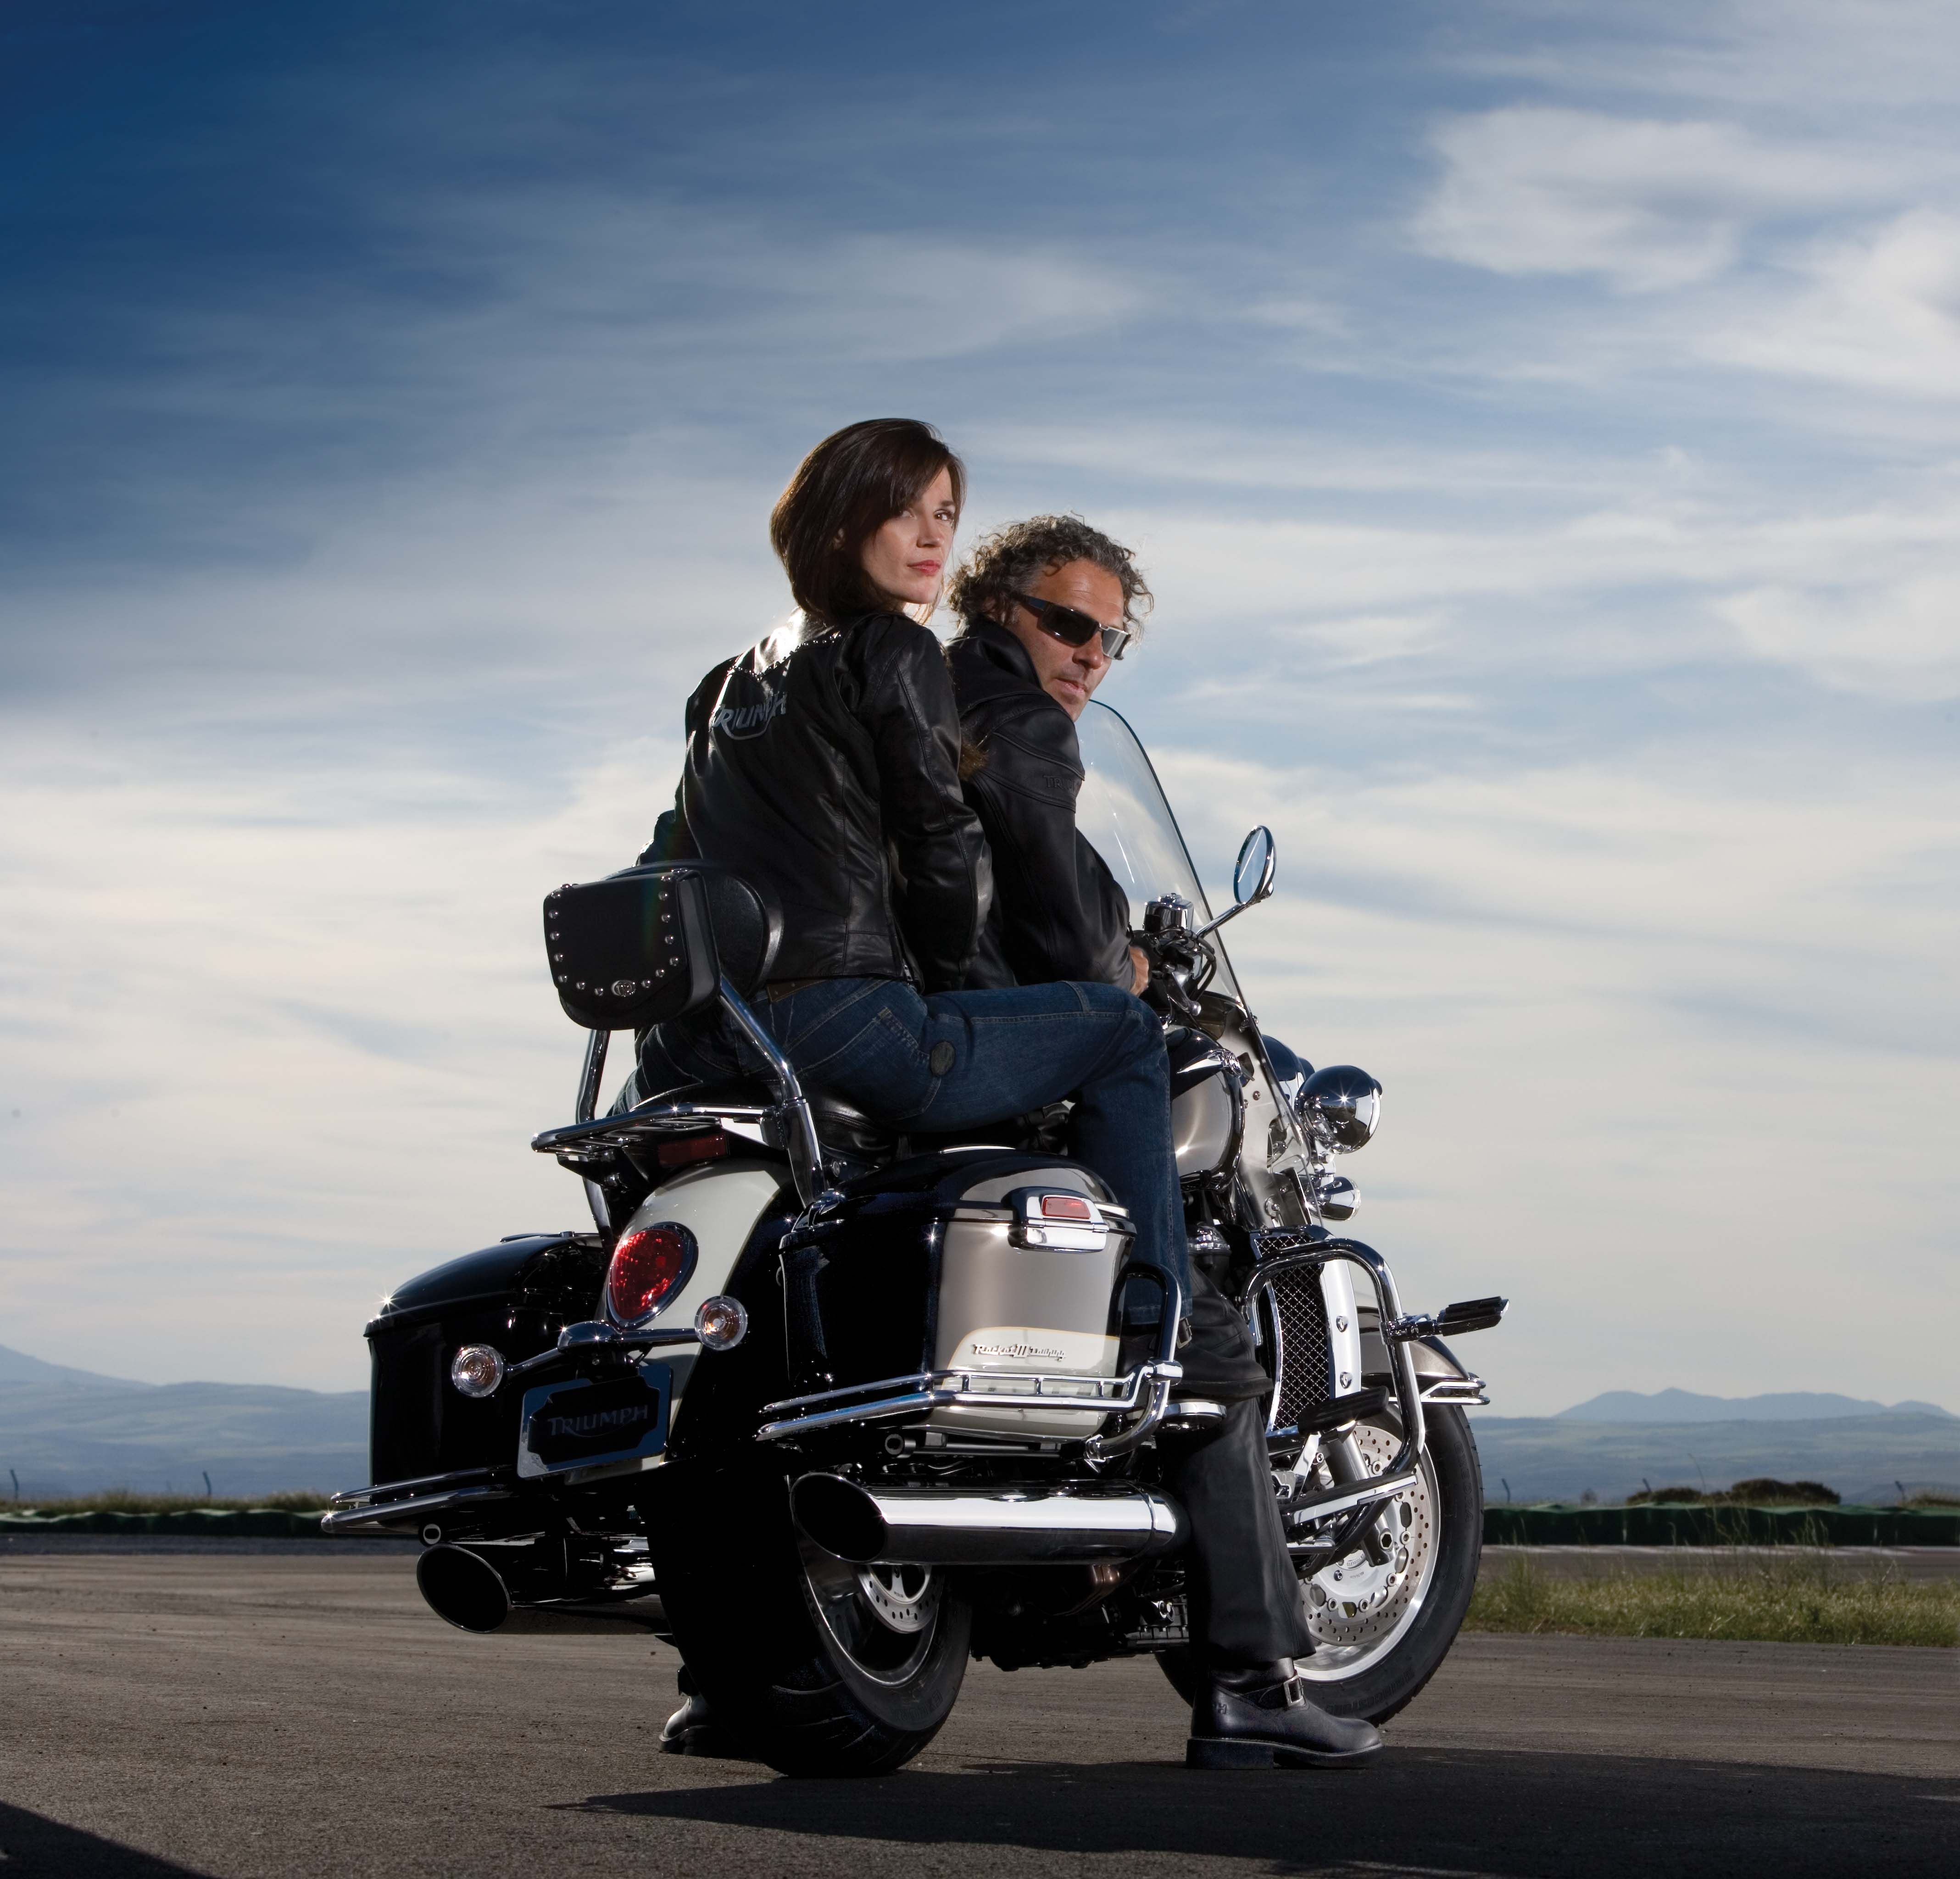 Triumph Rocket, Another Great Pic.